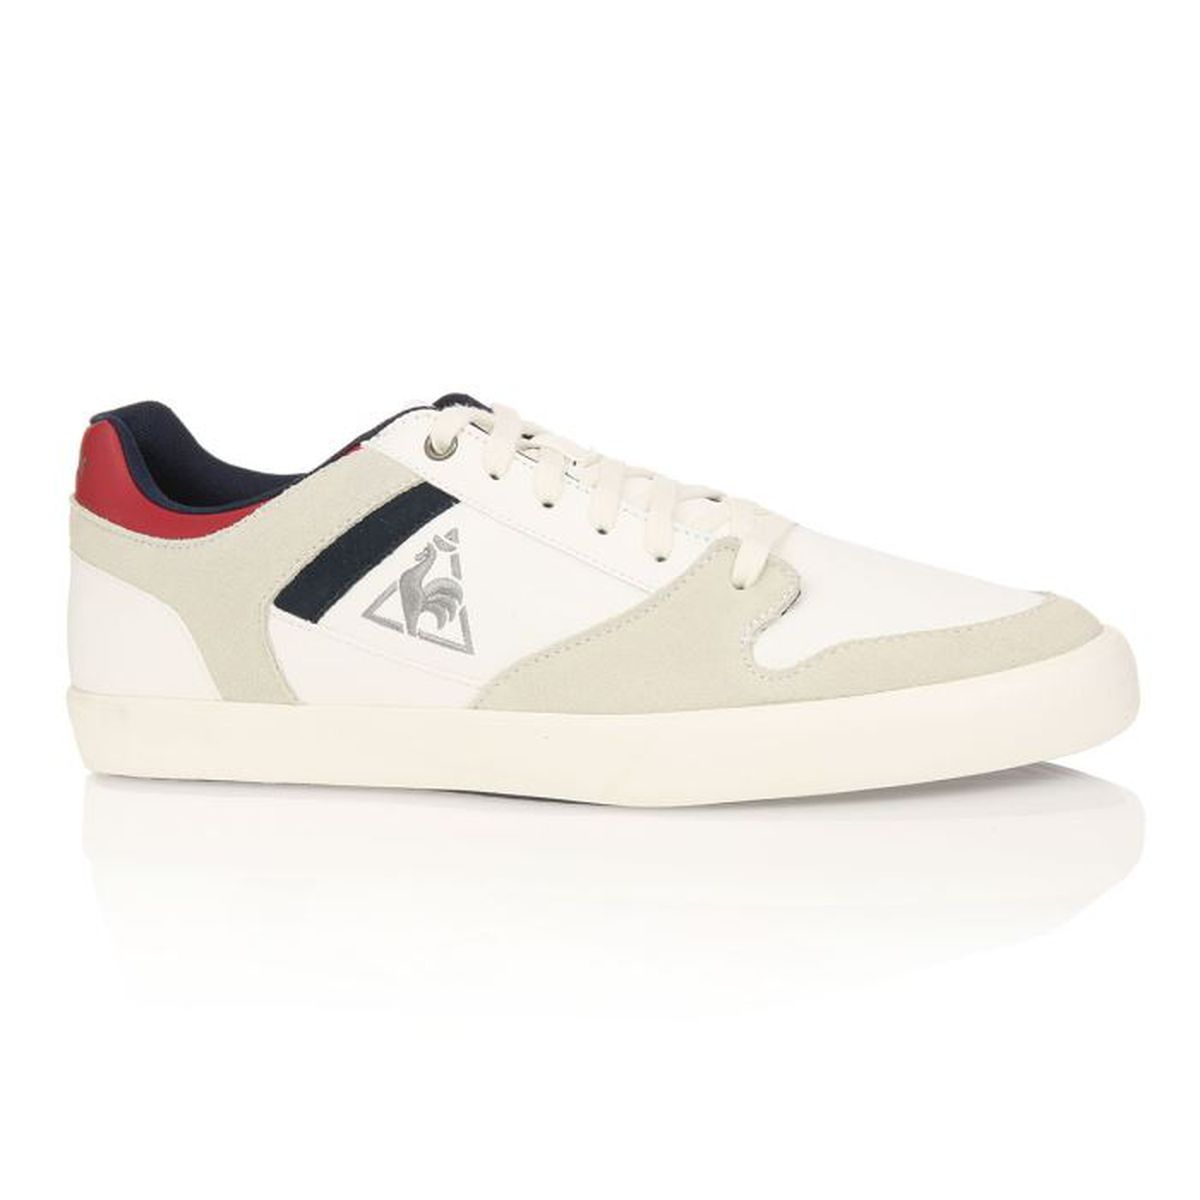 le coq sportif baskets peletier homme homme blanc gris achat vente le coq sportif baskets. Black Bedroom Furniture Sets. Home Design Ideas